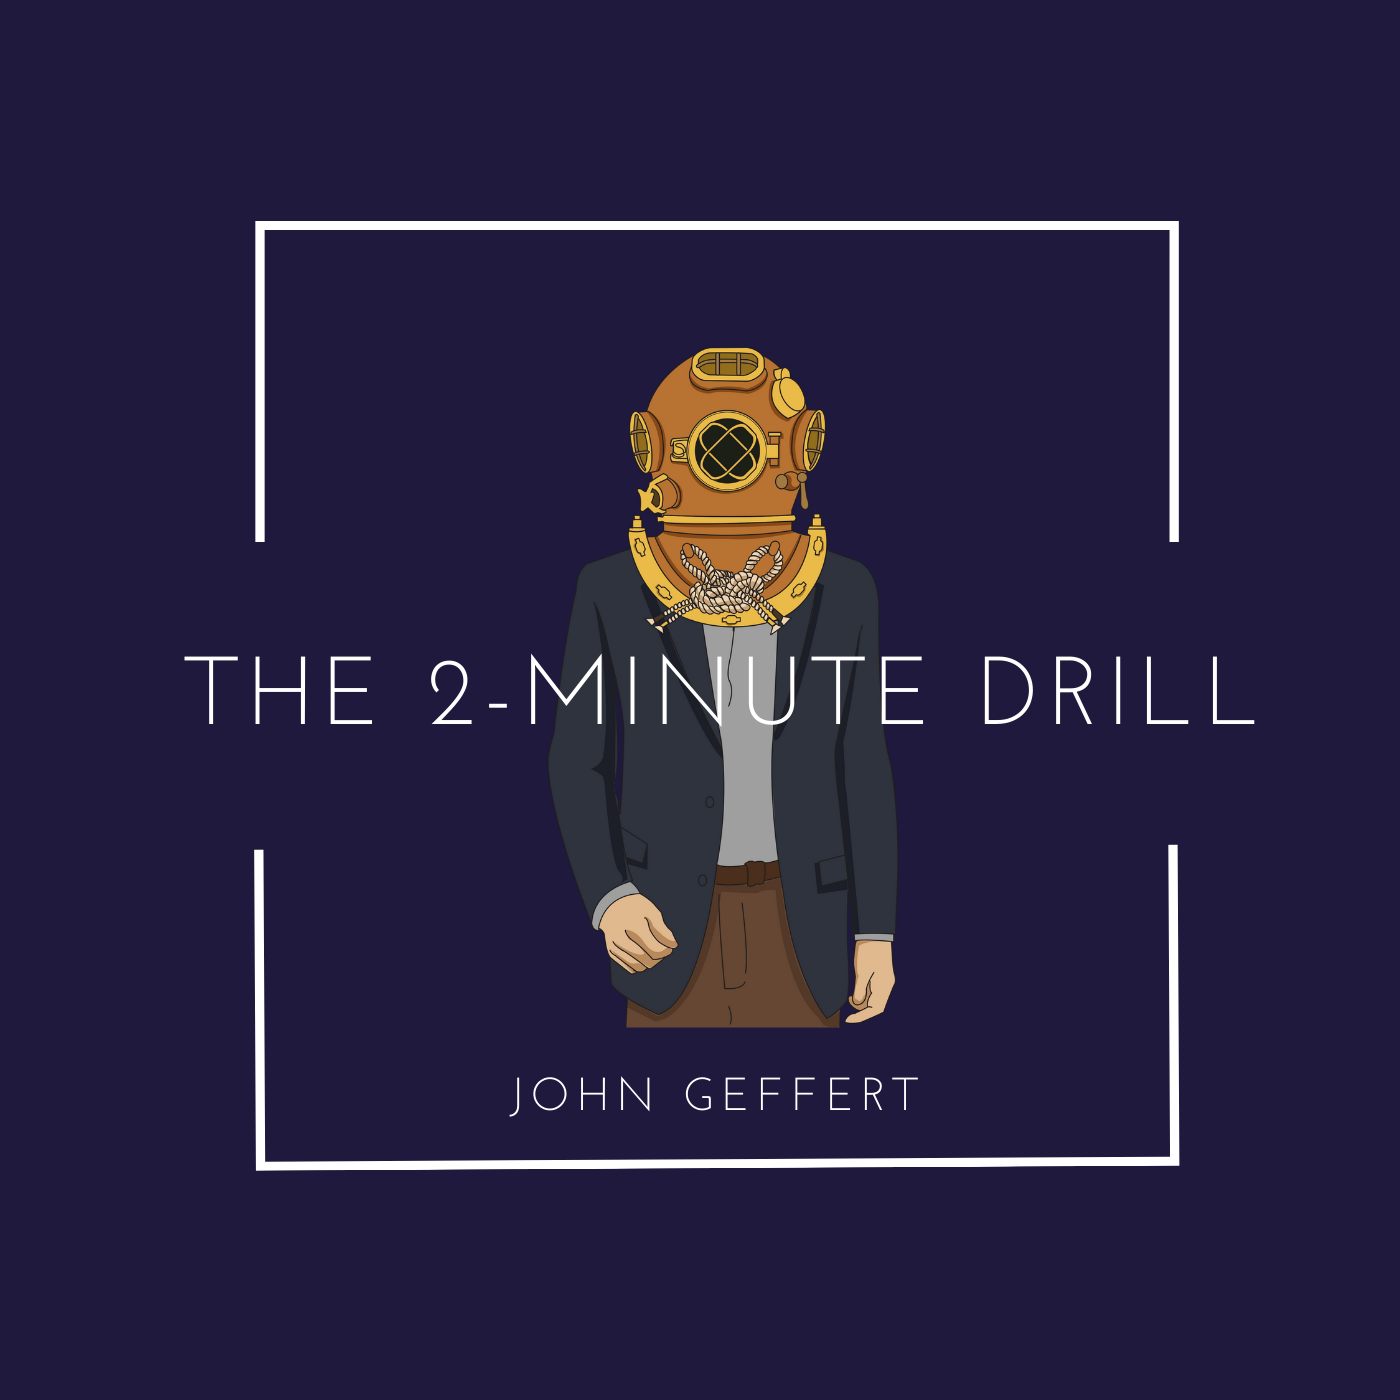 Artwork for podcast The 2-Minute Drill